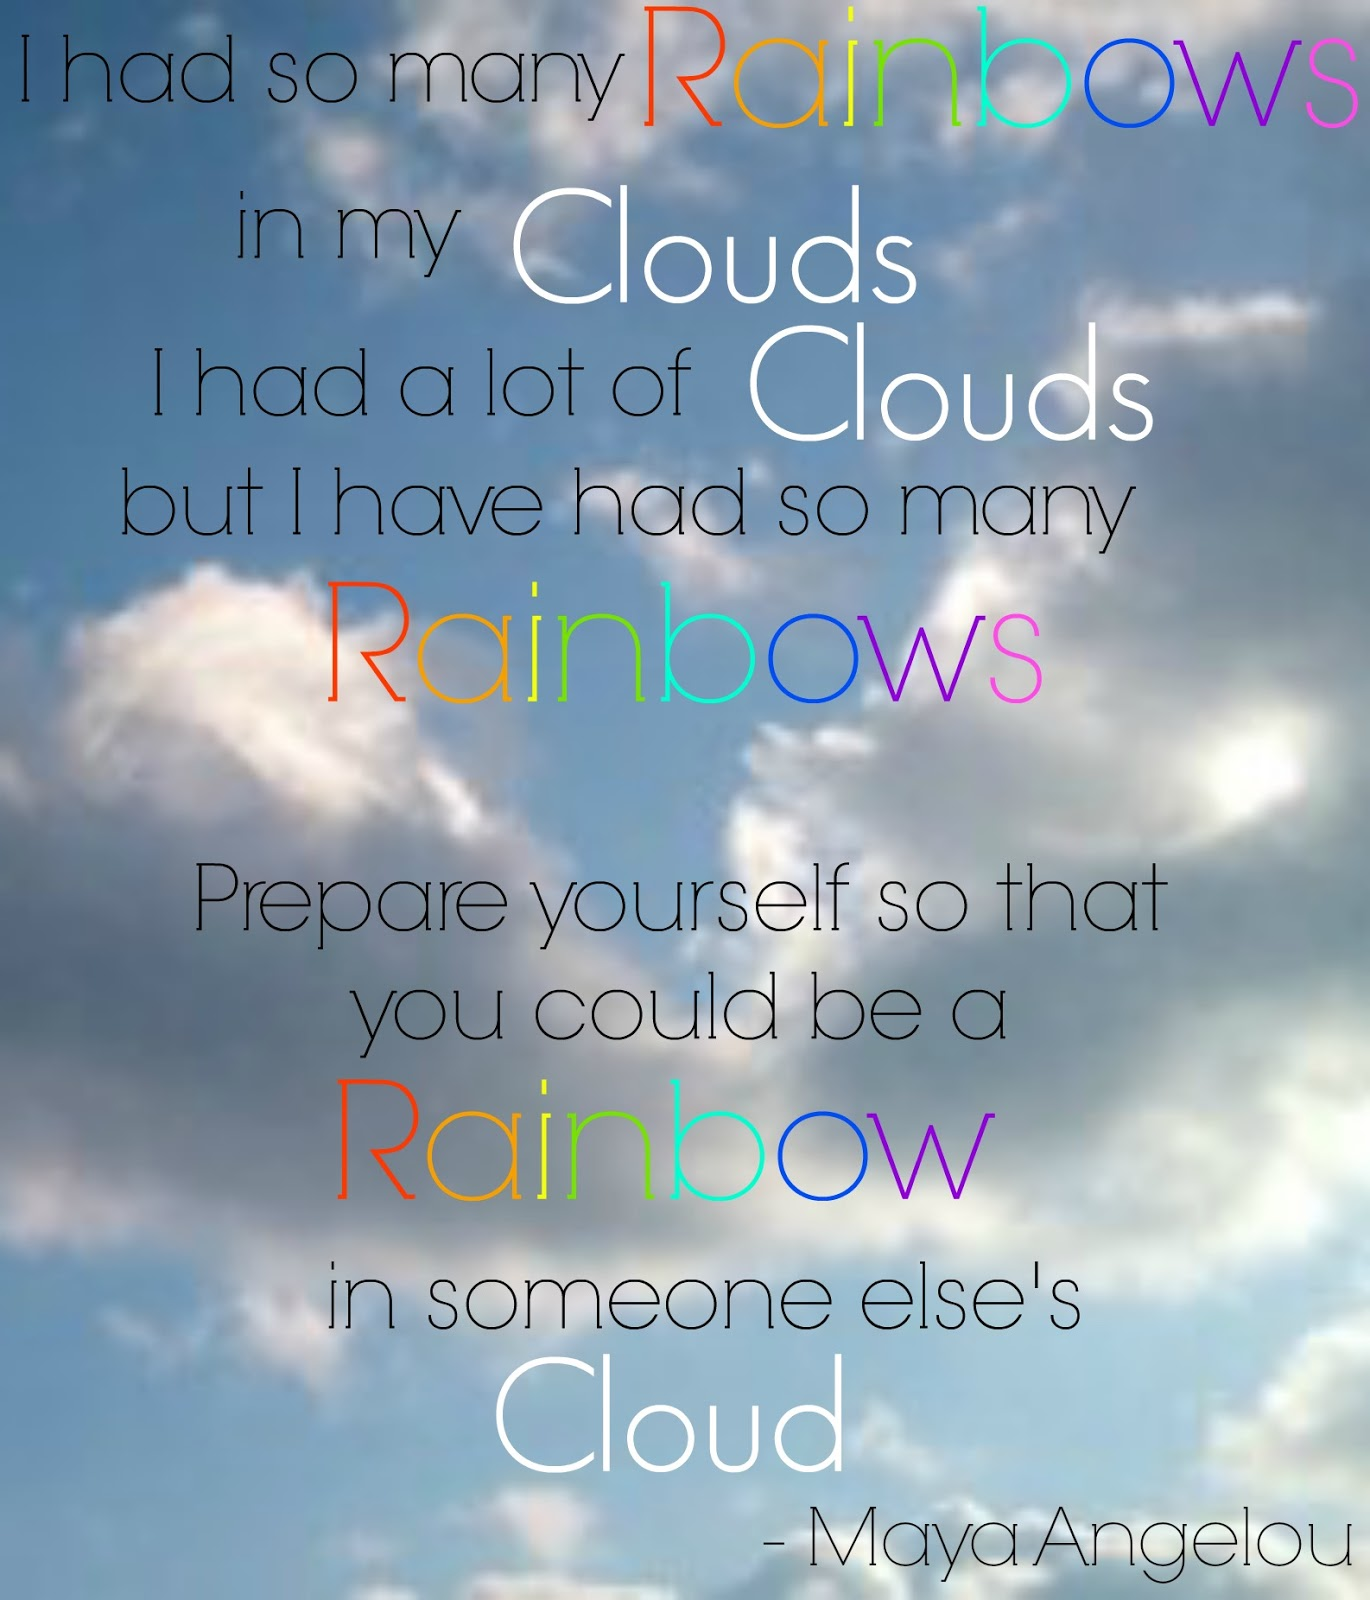 Cloud Quotes Endearing Rainbow Quotes And Sayings  Suri's First Birthday  Pinterest . Inspiration Design